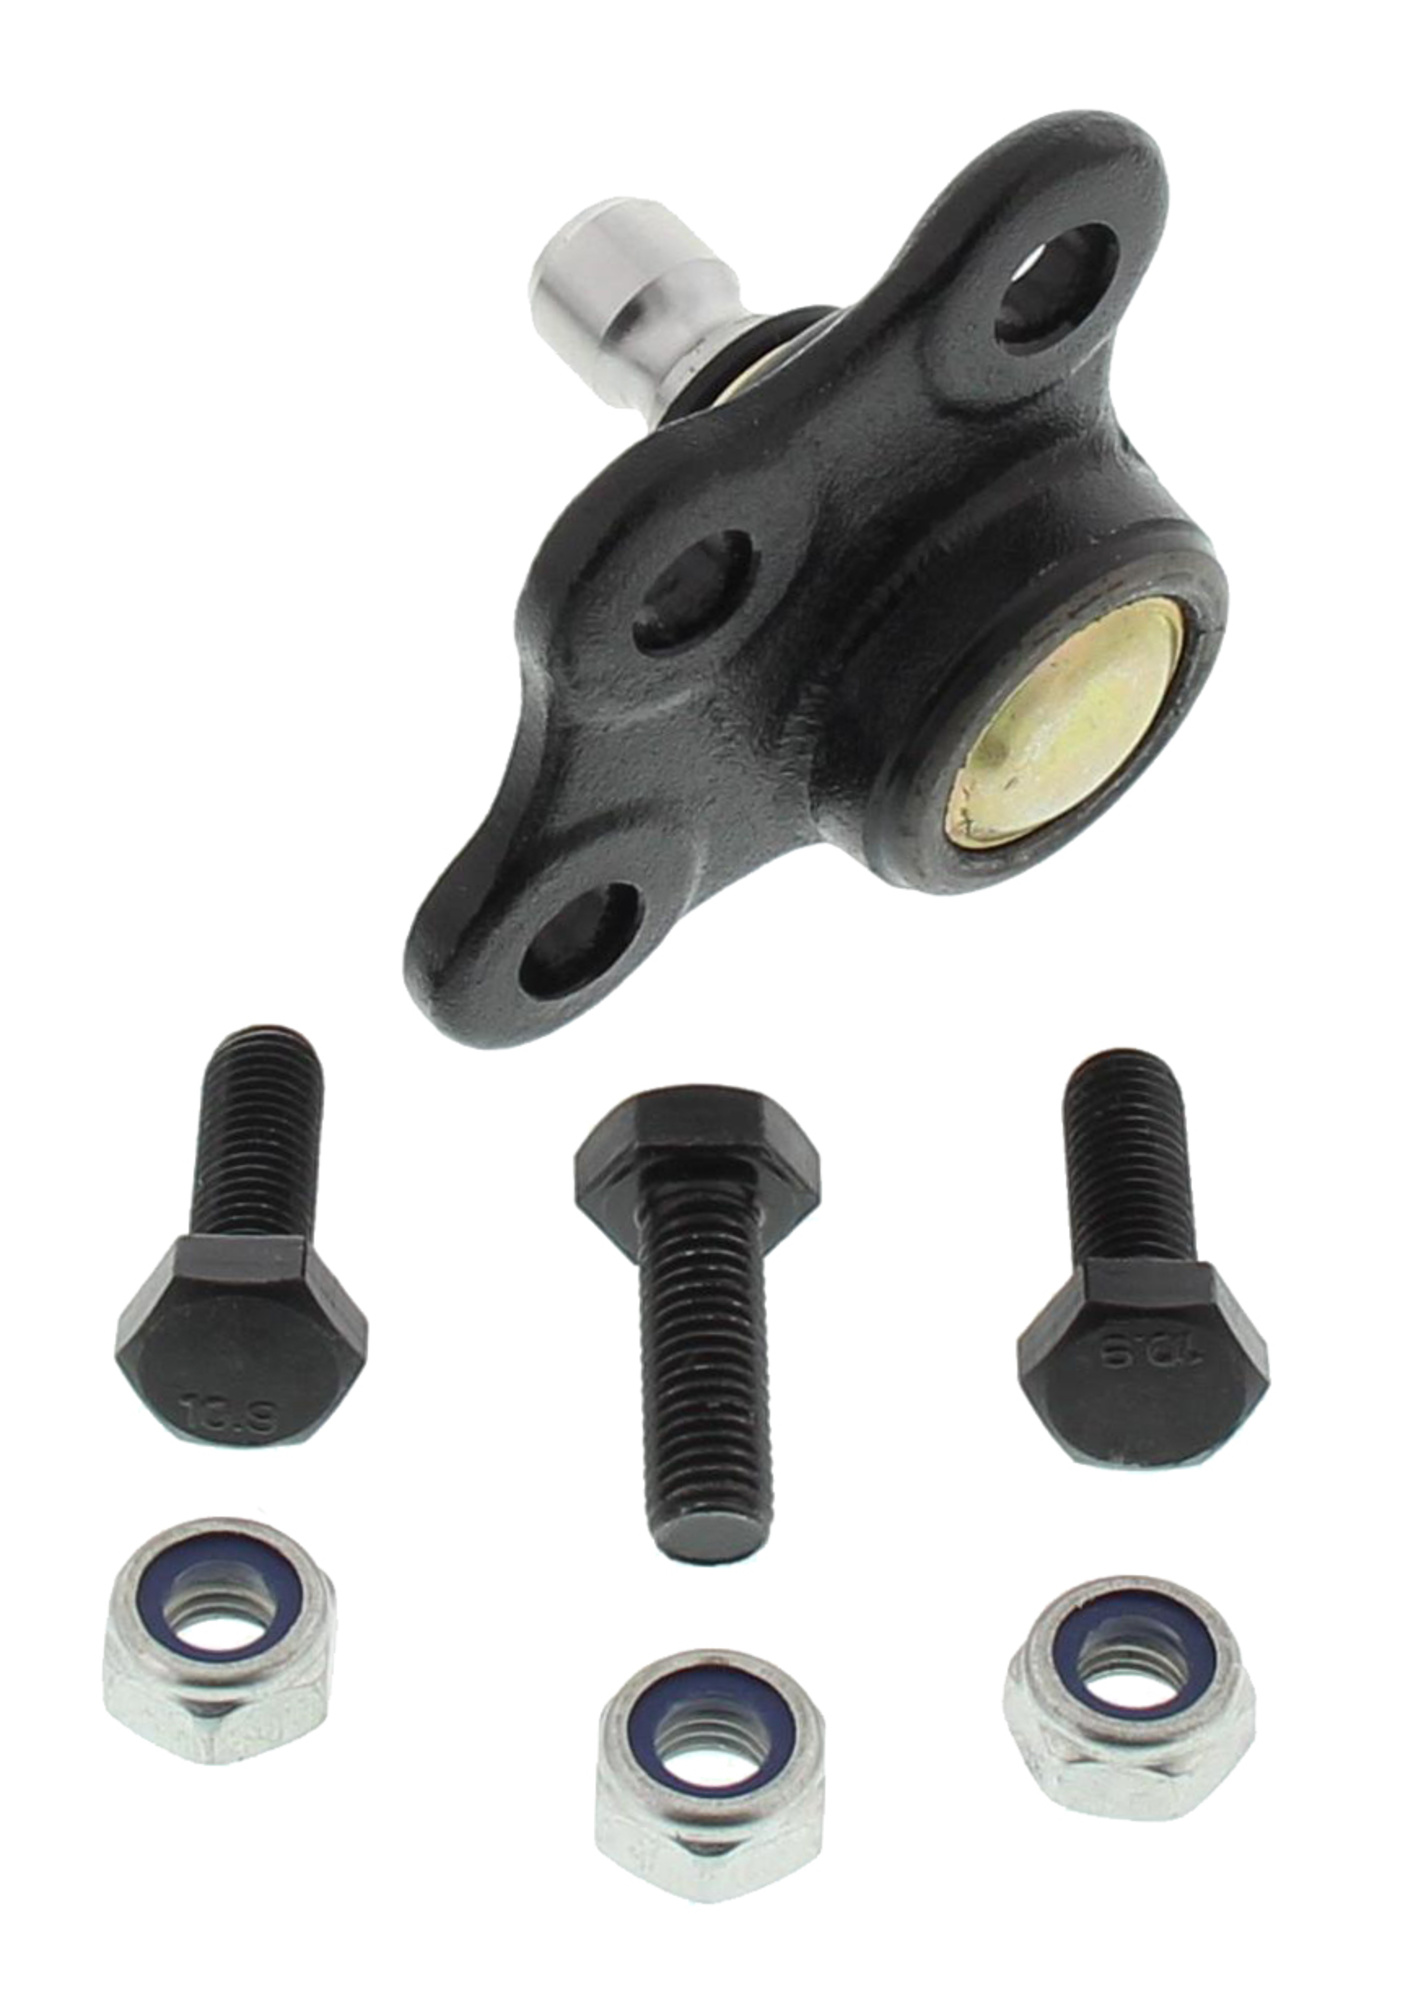 MAPCO 49610 ball joint